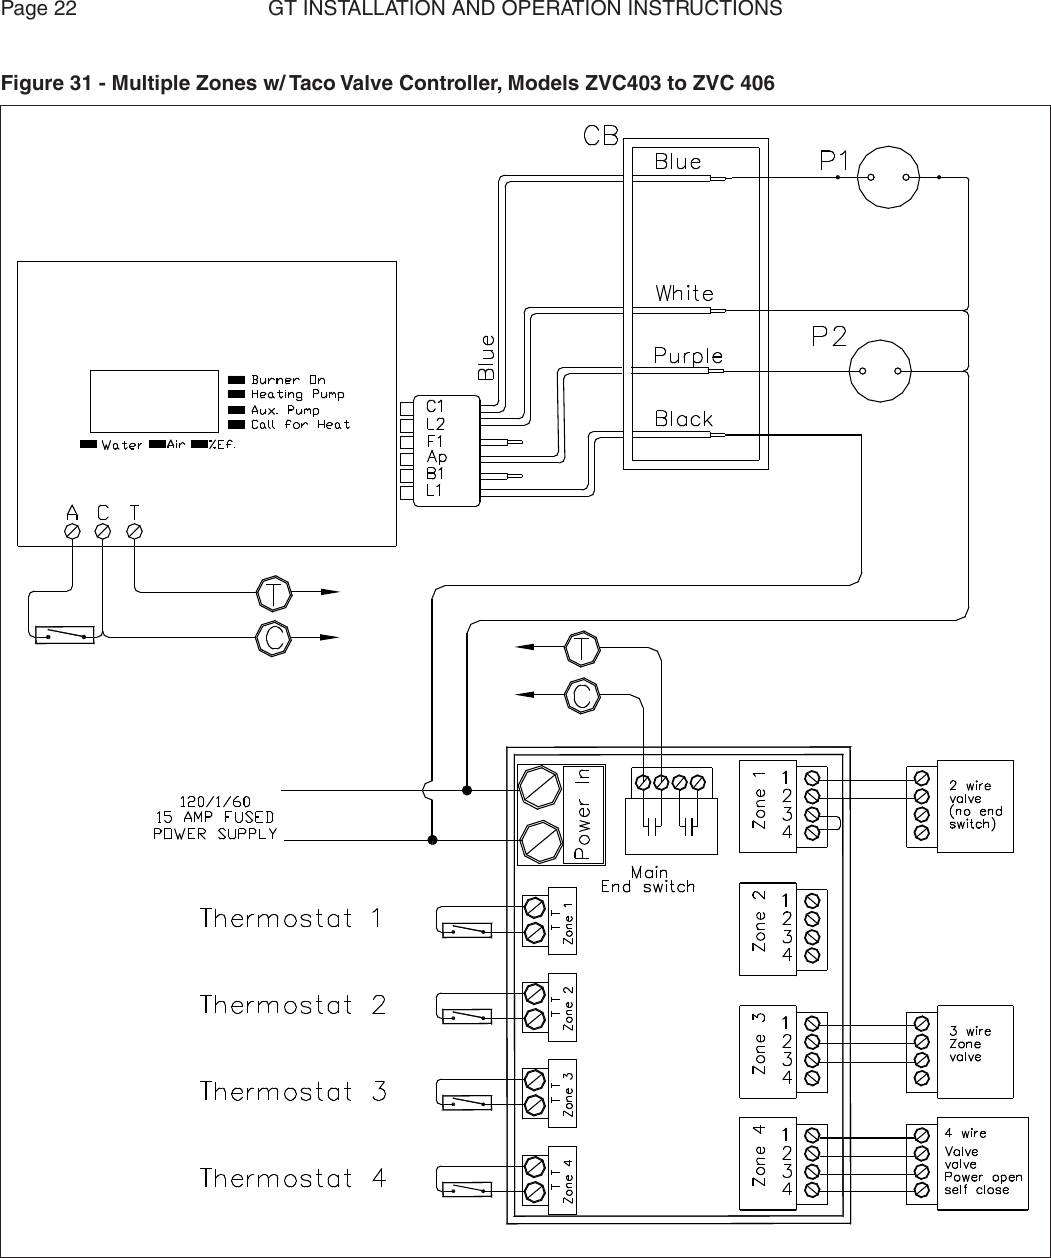 18gt Images For Programmable Logic Controller Ladder Diagram ... on motor diagrams, electrical diagrams, electronic circuit diagrams, battery diagrams, gmc fuse box diagrams, series and parallel circuits diagrams, friendship bracelet diagrams, troubleshooting diagrams, smart car diagrams, pinout diagrams, internet of things diagrams, engine diagrams, led circuit diagrams, switch diagrams, sincgars radio configurations diagrams, honda motorcycle repair diagrams, transformer diagrams, hvac diagrams, lighting diagrams,